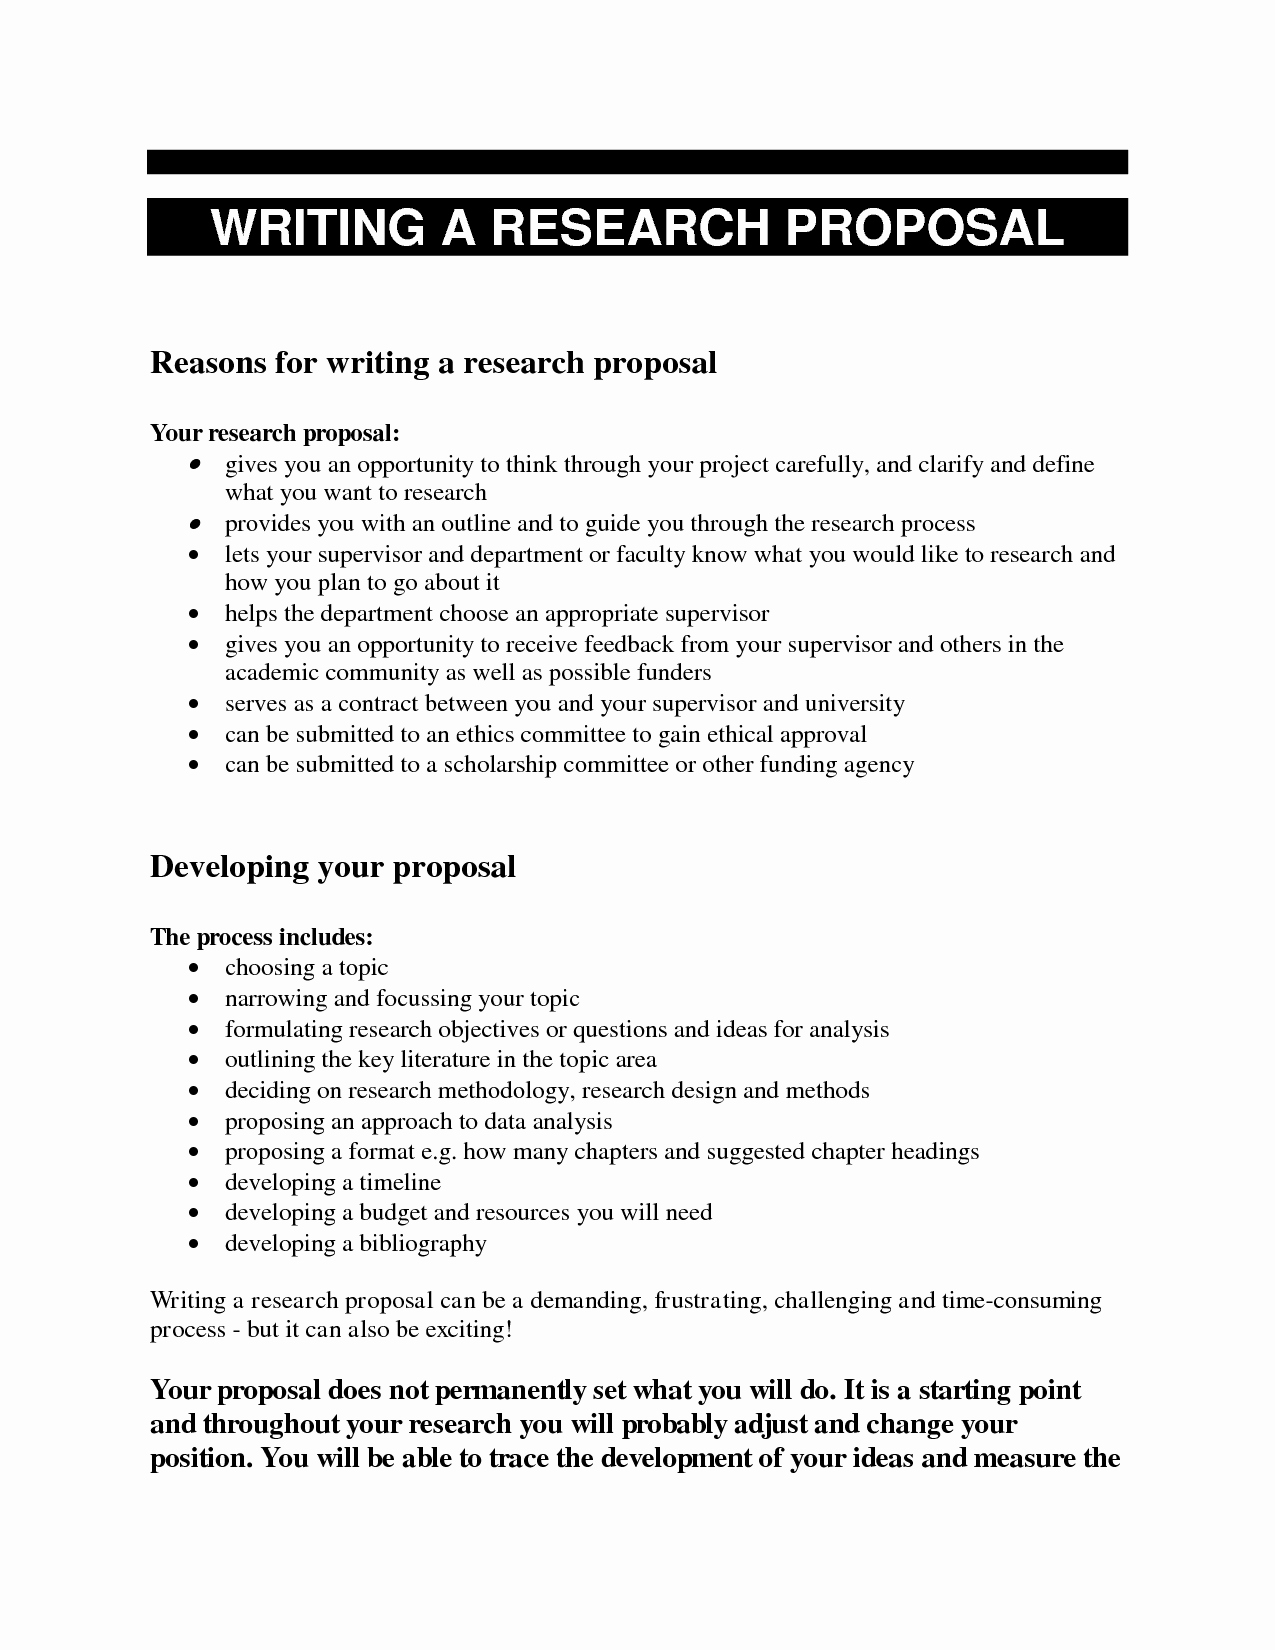 016 How To Write Research Paper Proposal Sample Essay Template For Topics College Students Amazing A In Apa Format Mla Full